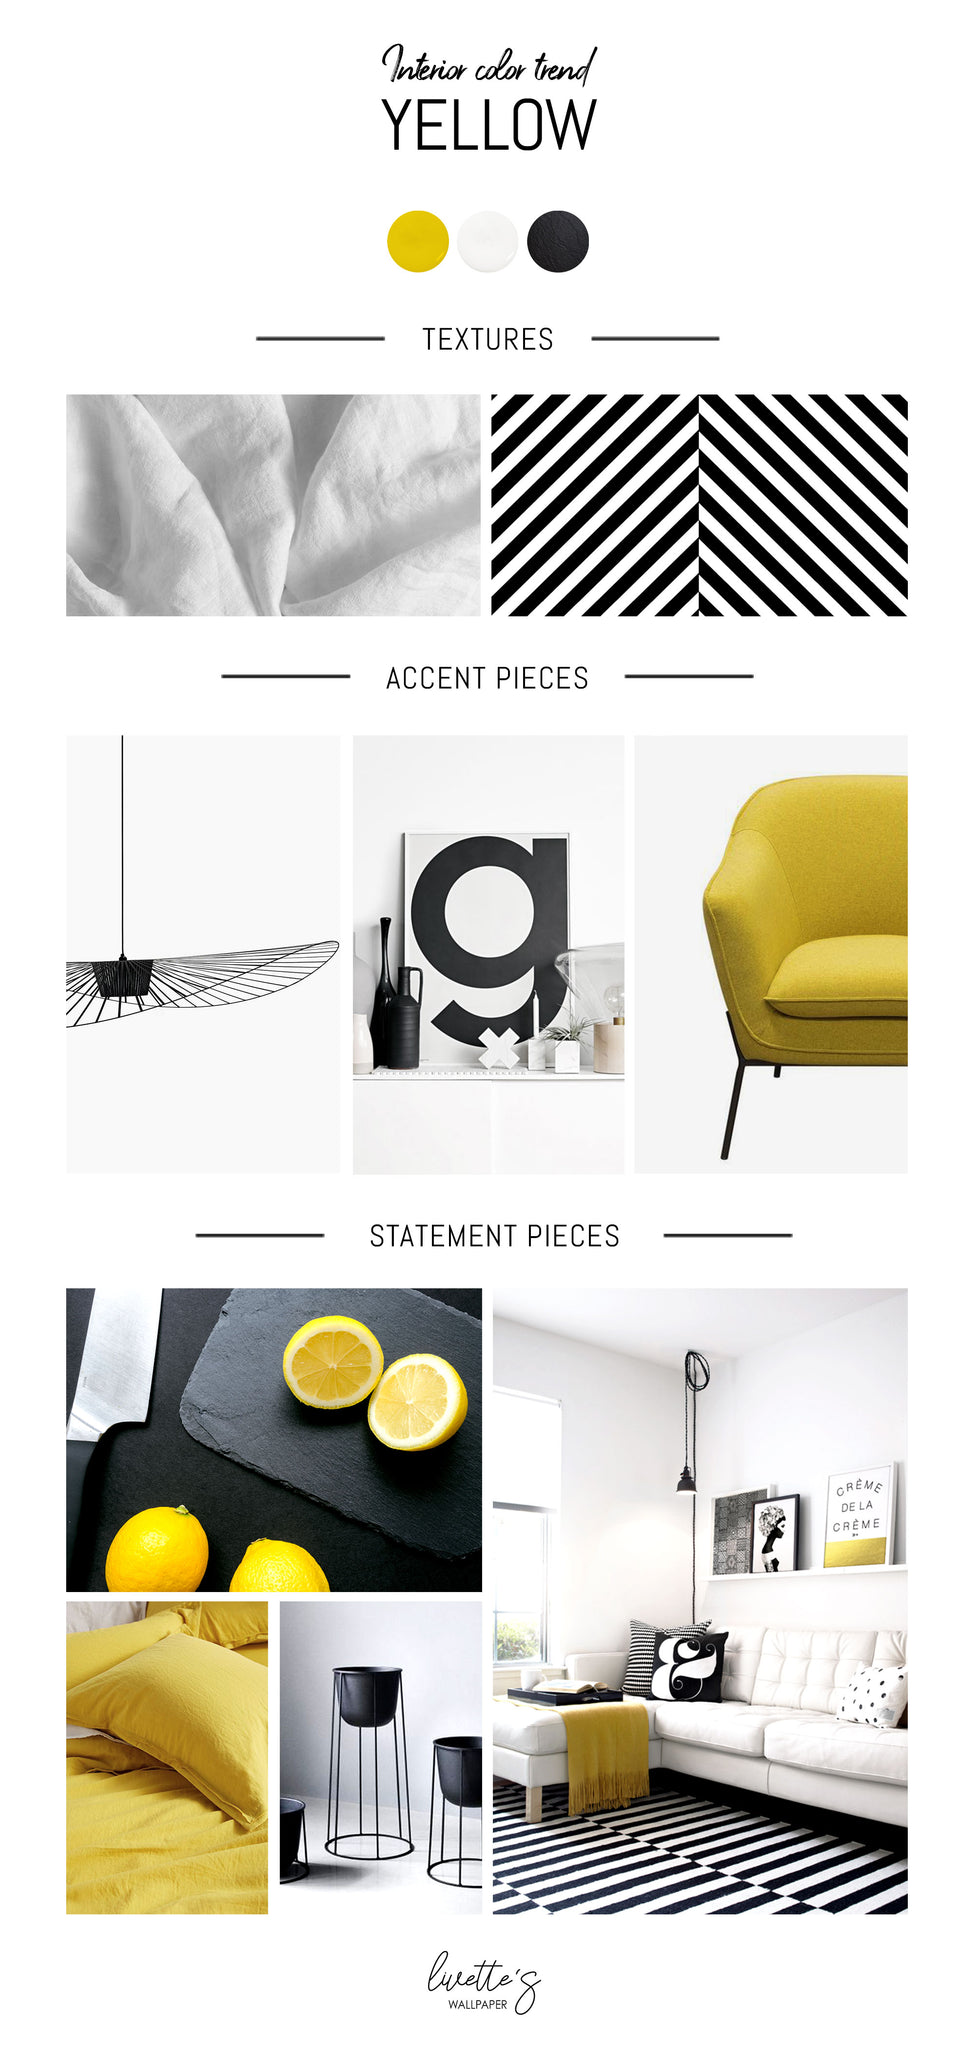 Yellow color trend inspiration mood board for interior design